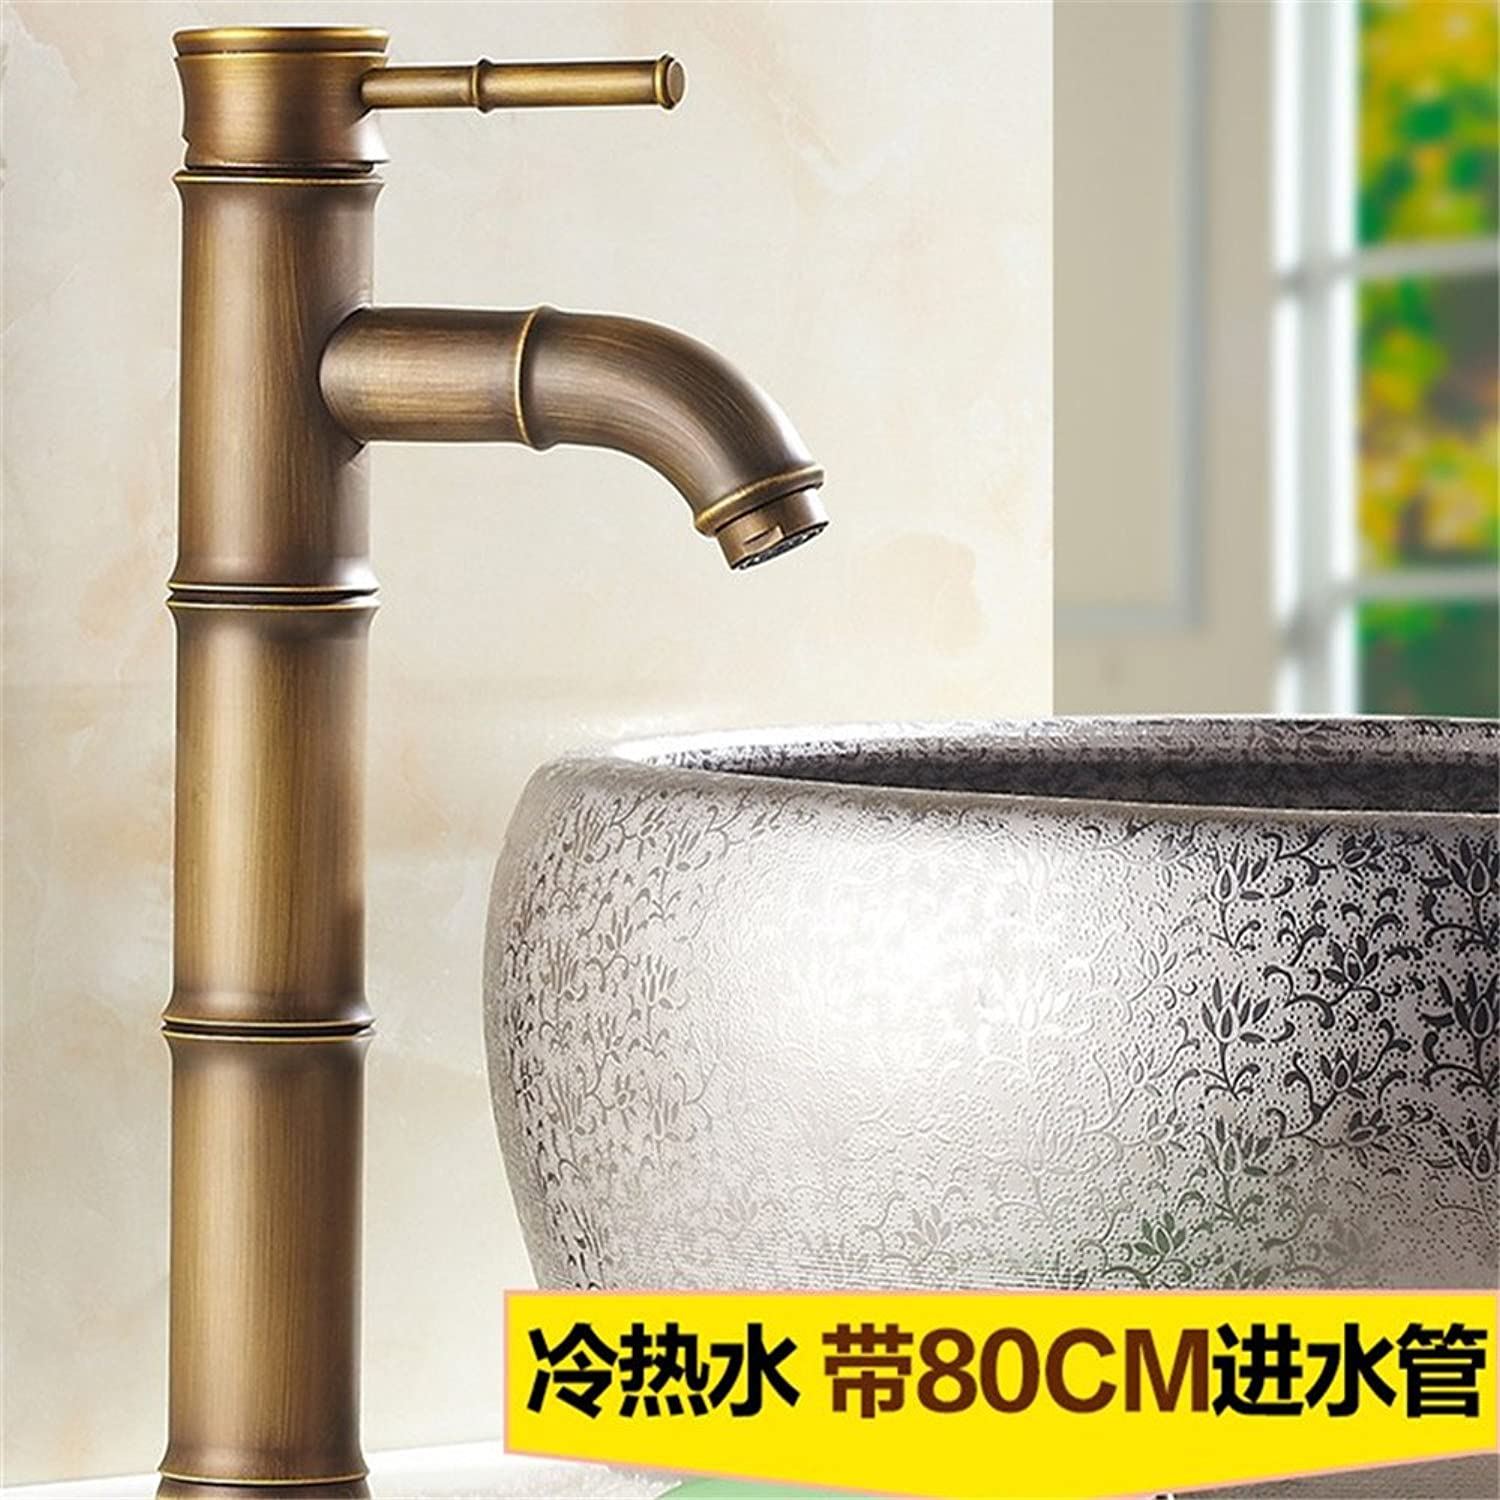 WasserhahnTap Copper European antique faucet retro single hole basin faucet bronze color washbasin hot cold elbow three-section piping